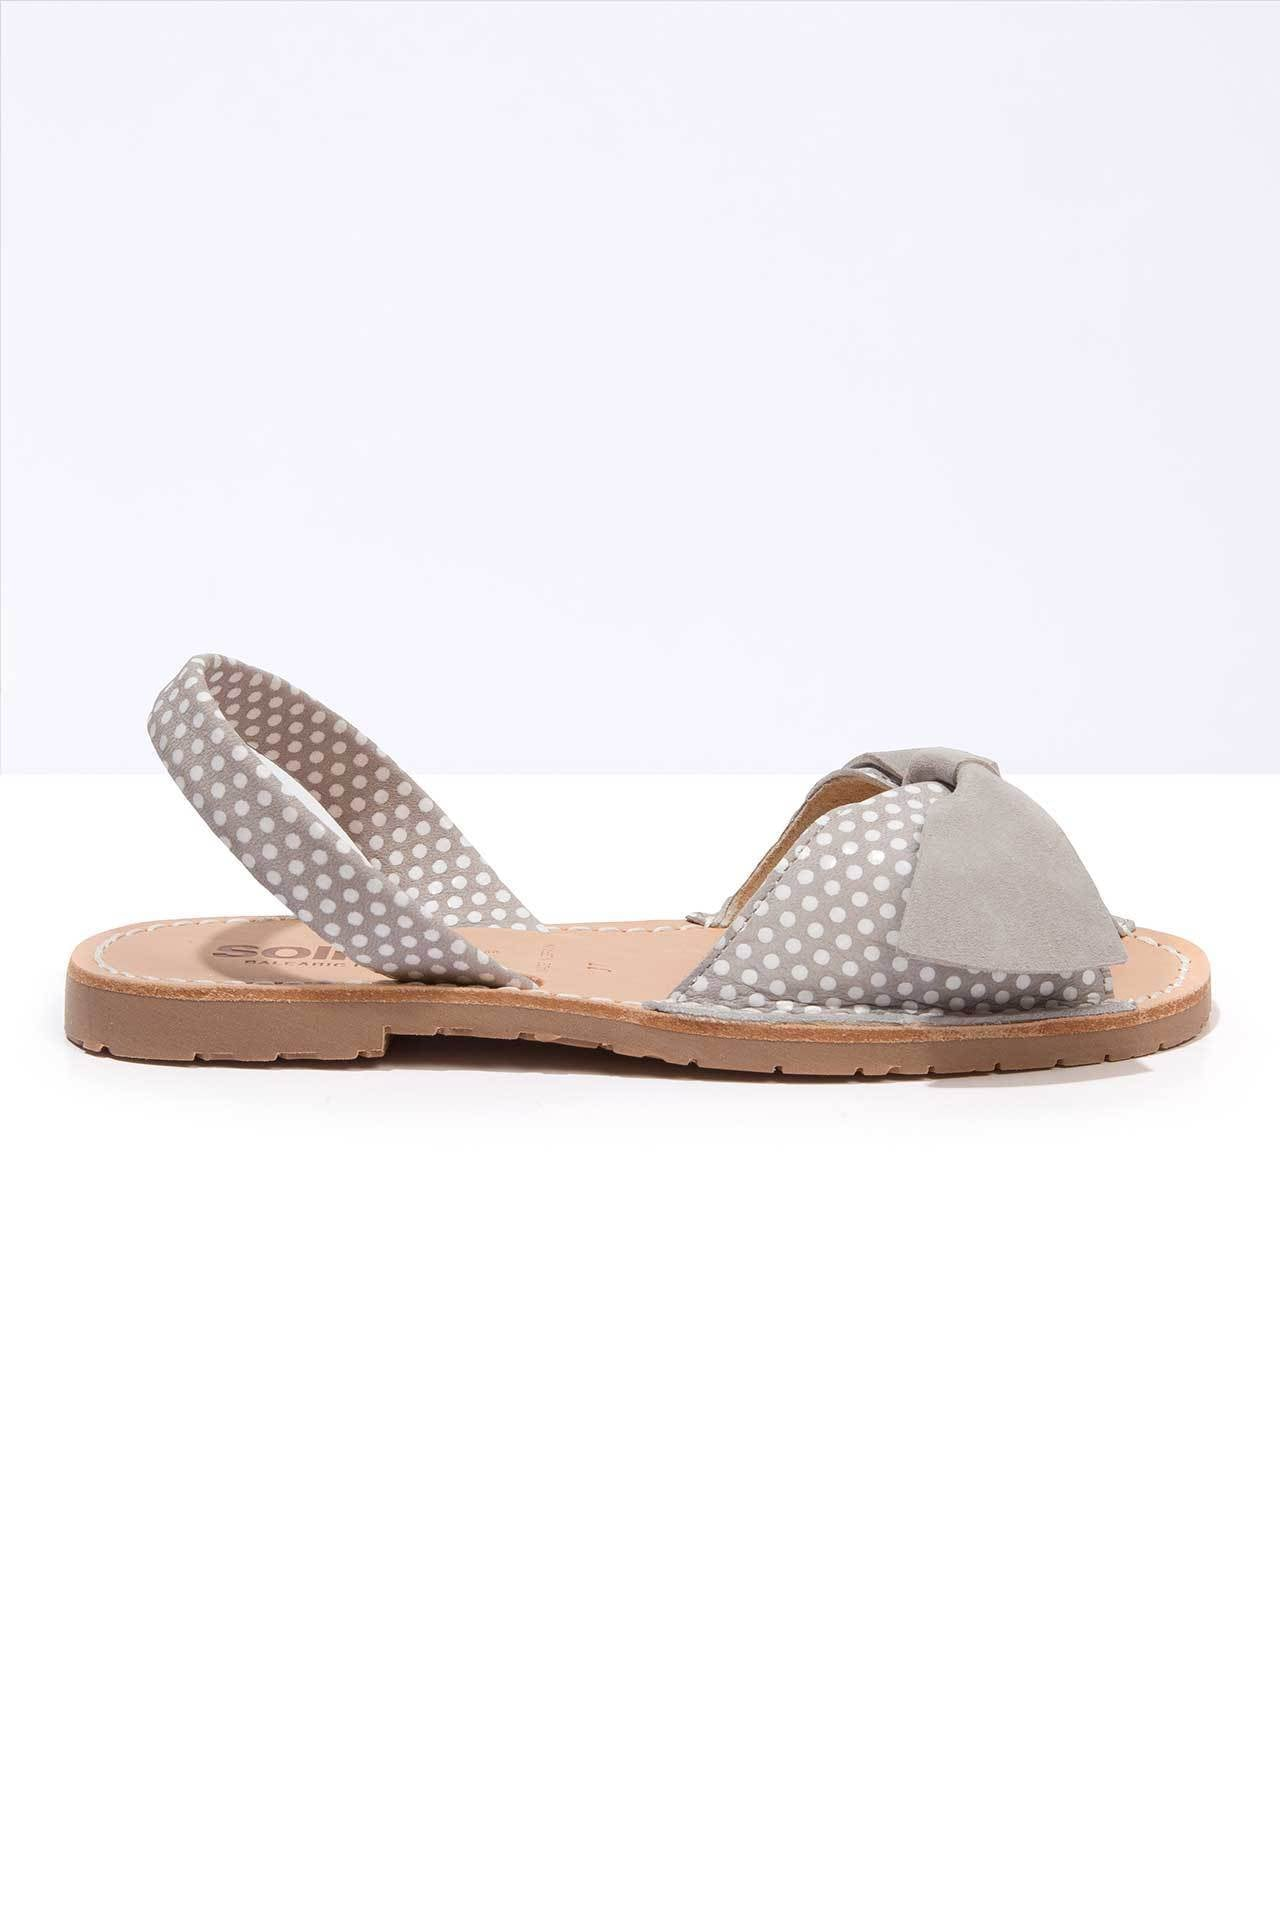 Grey polka dot leather Menorcan Sandals for Women, made in Spain by Solillas Australia, side view